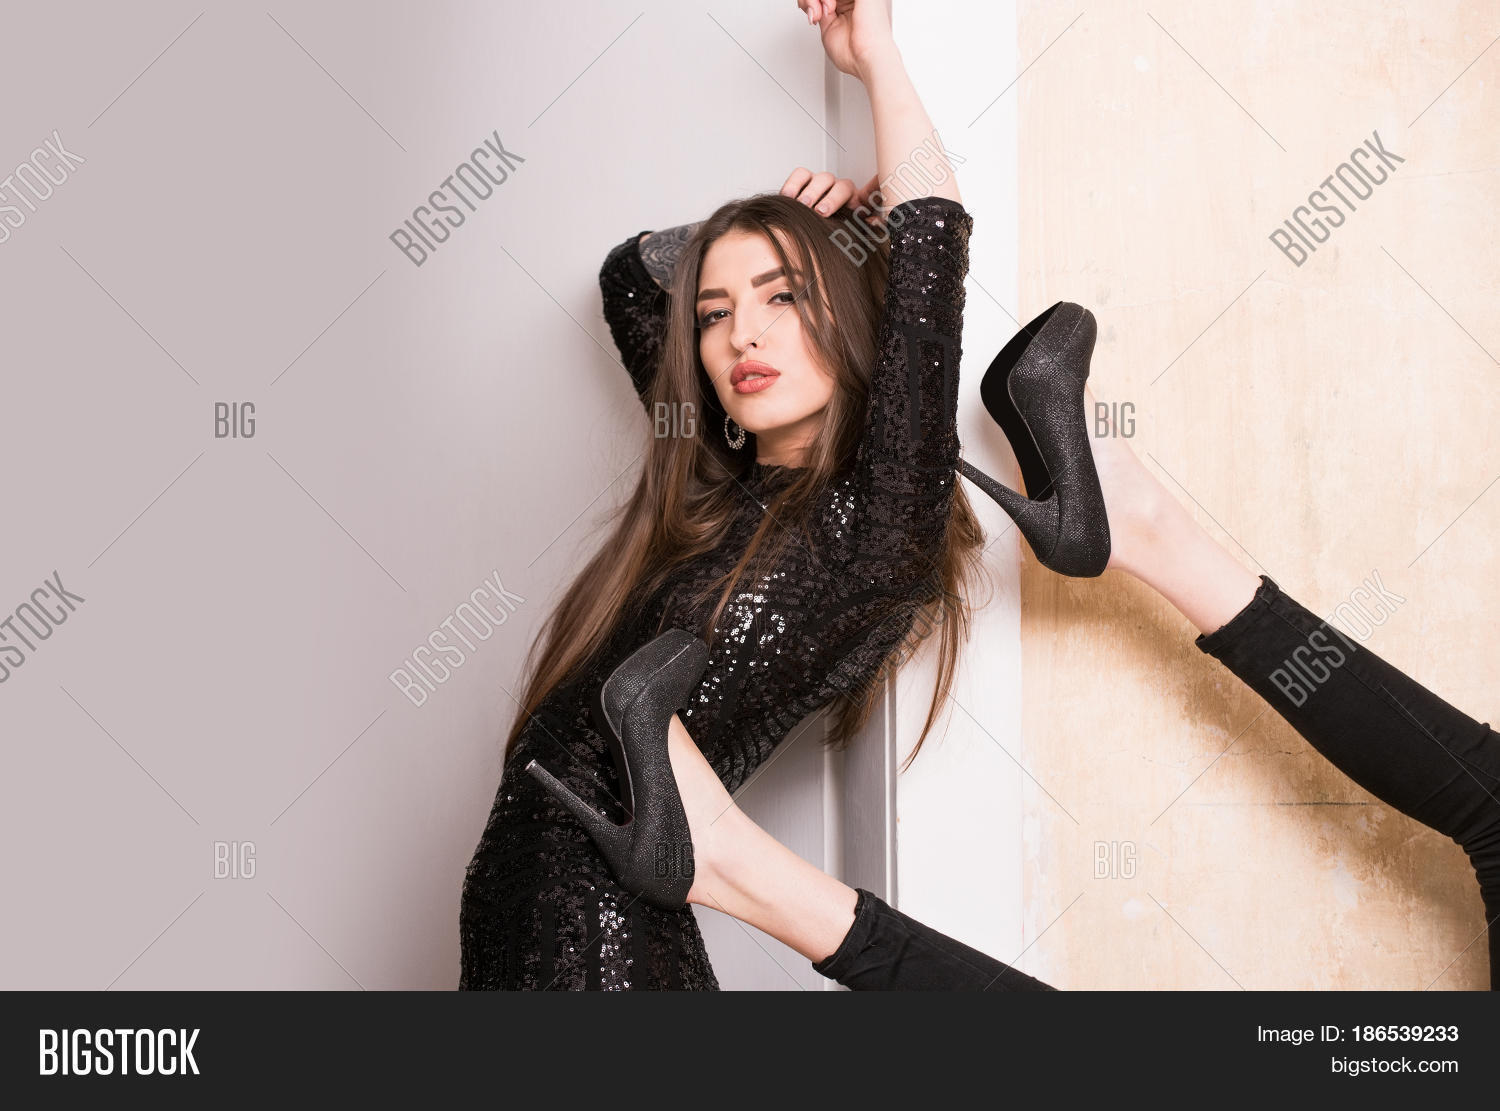 3b367bbf7eb Sexy woman or pretty girl in black sequin dress leaning on white background.  Female legs in elegant fashion shoes on high heels and tights on beige wall.